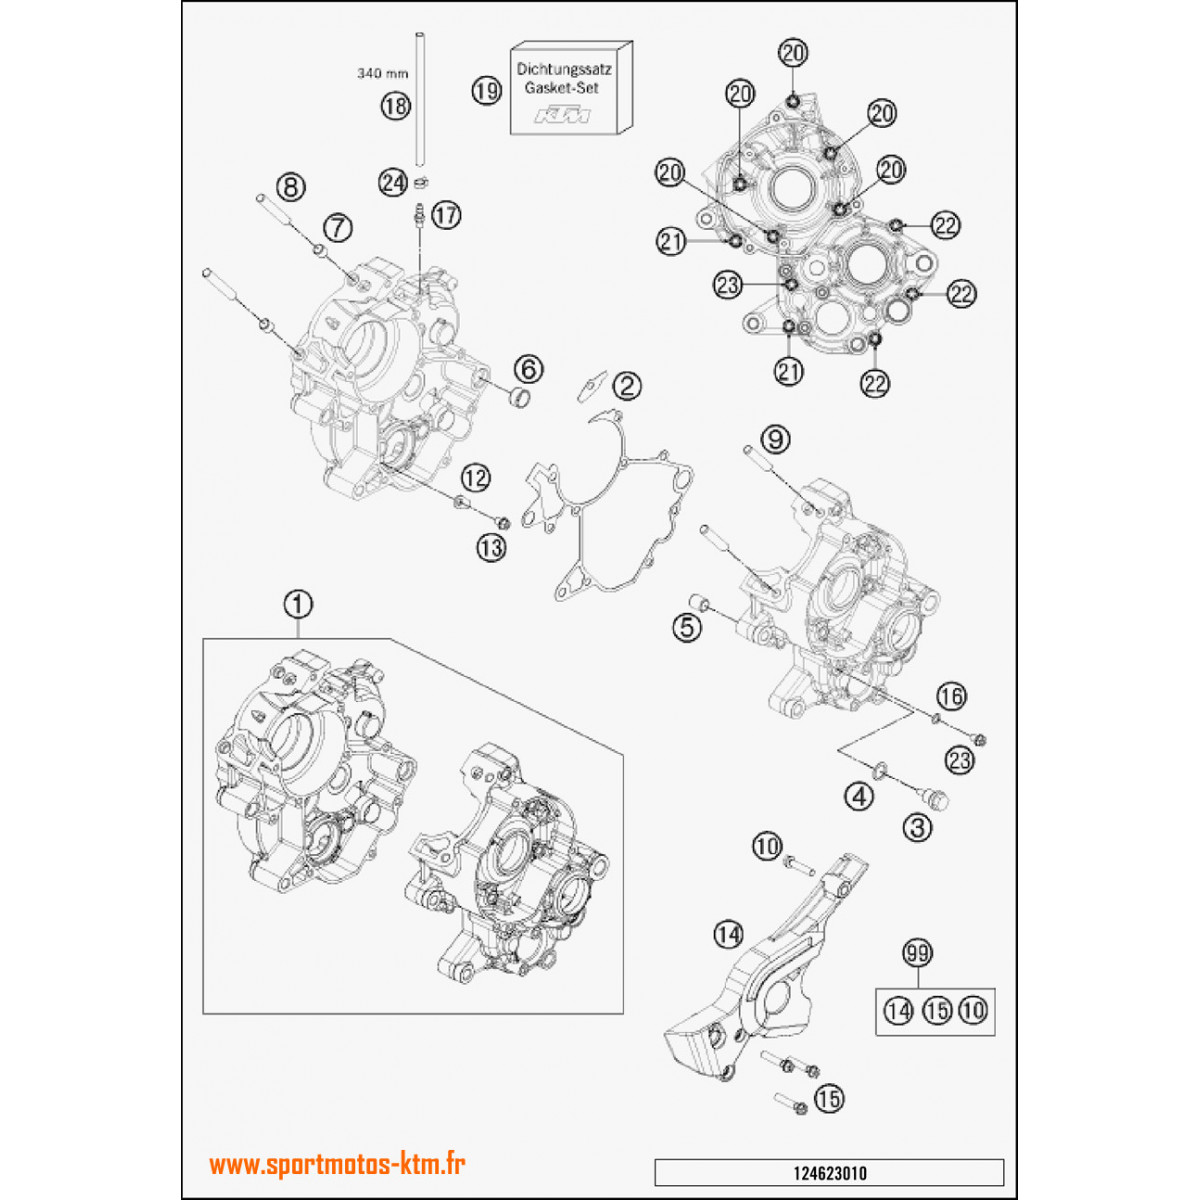 hight resolution of ktm 65 engine diagram wiring diagram database ktm engine diagram engine case cpl bearing ktm